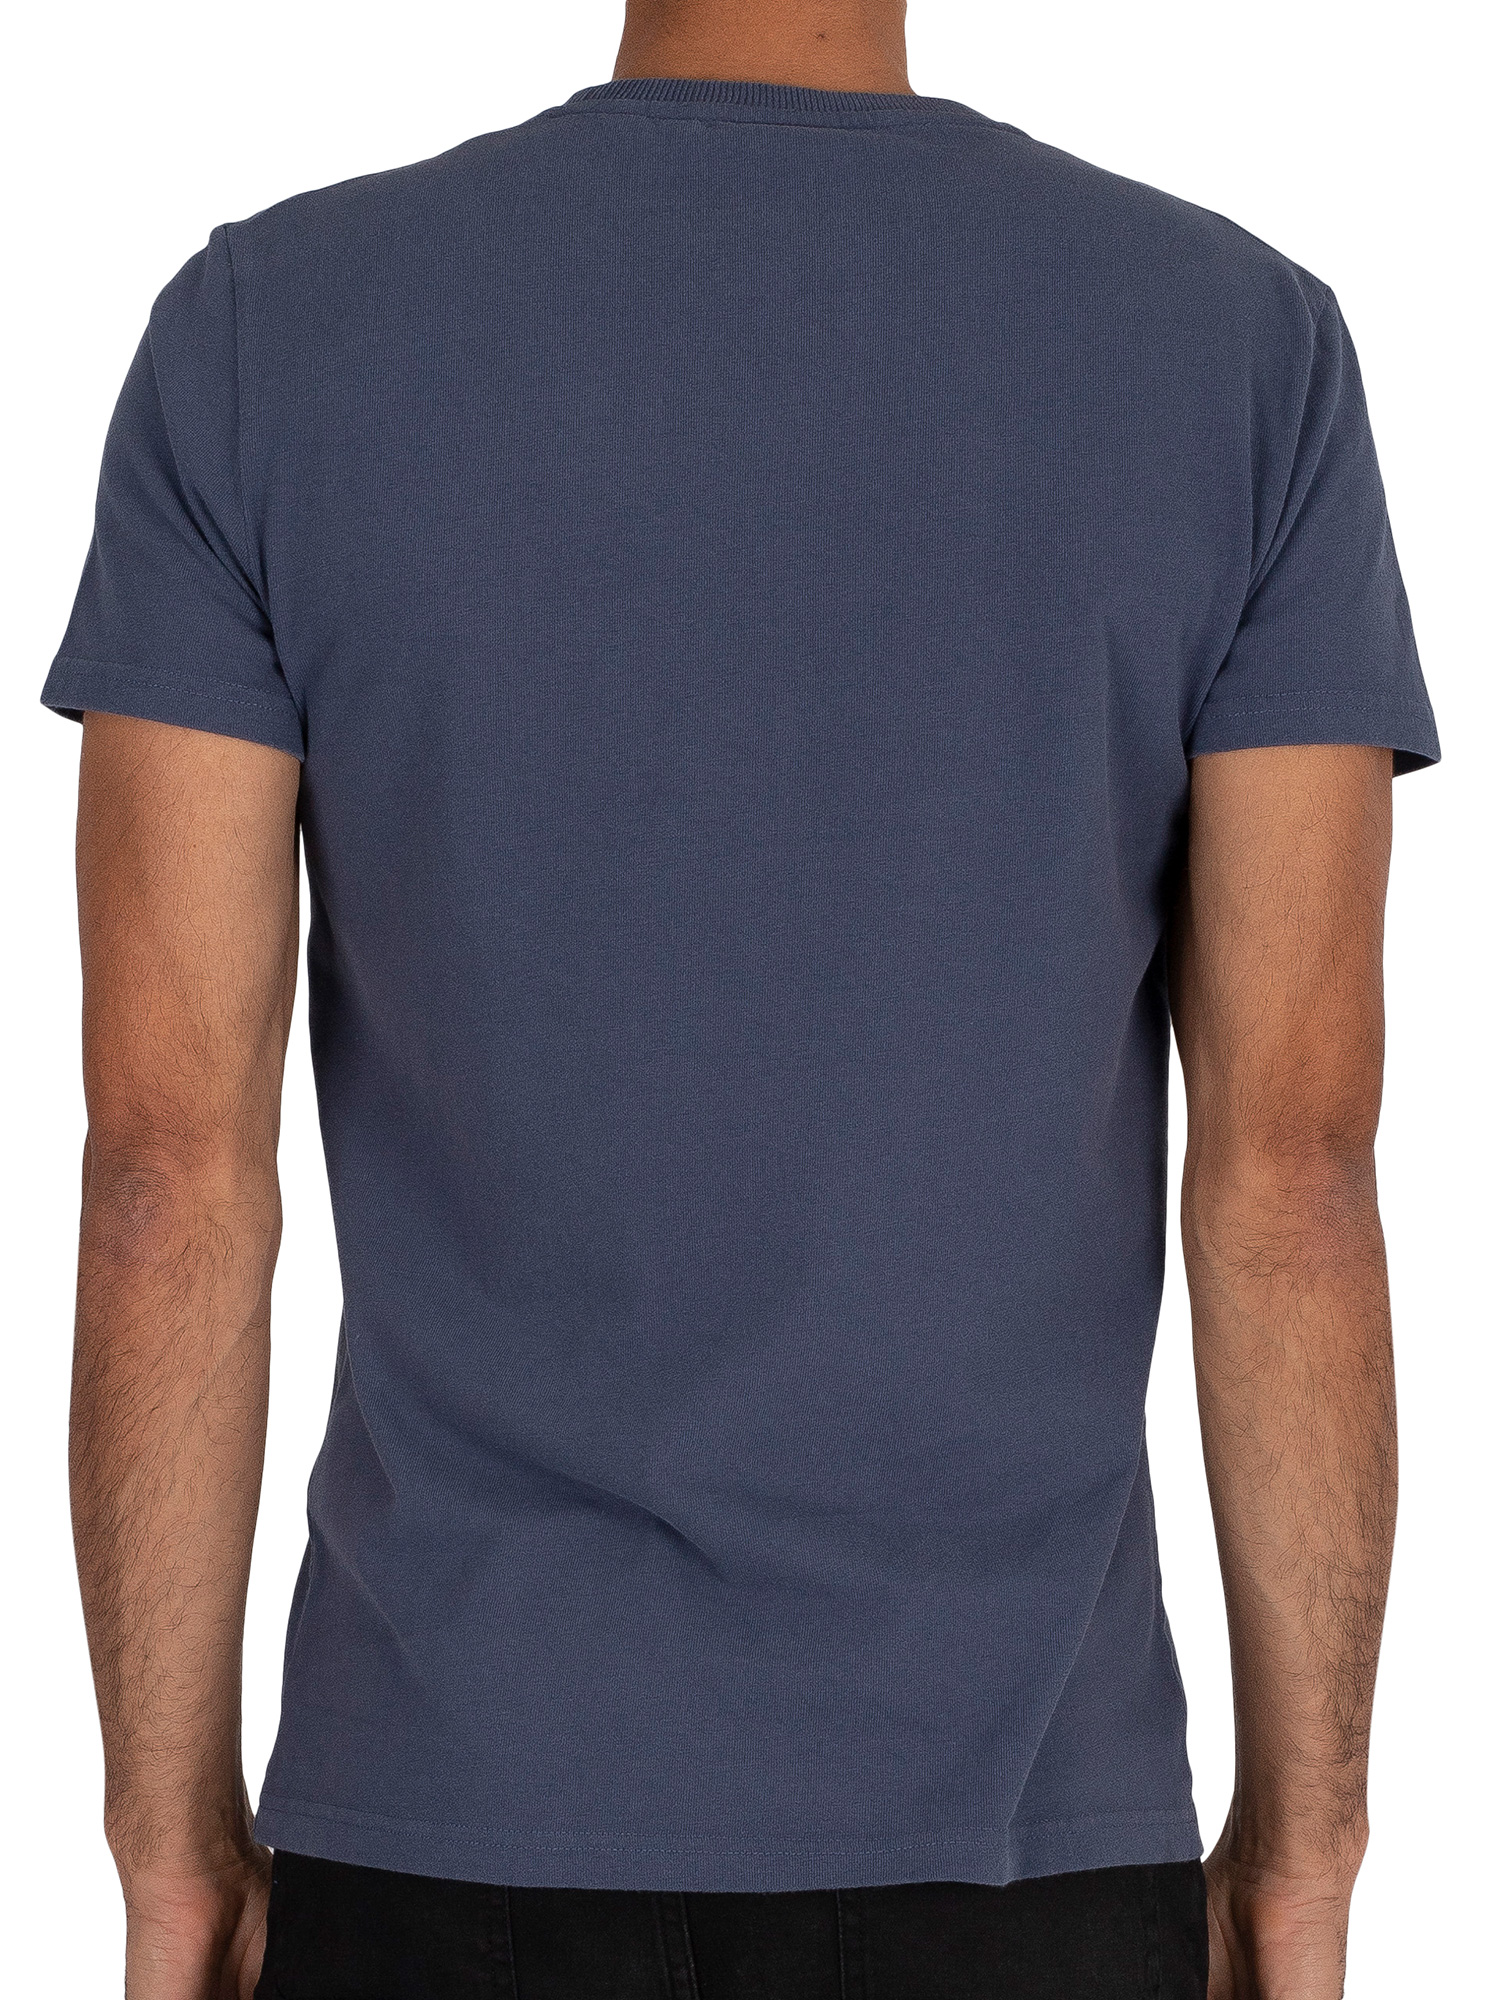 Superdry Shirt Shop Bonded T-Shirt - Lauren Navy